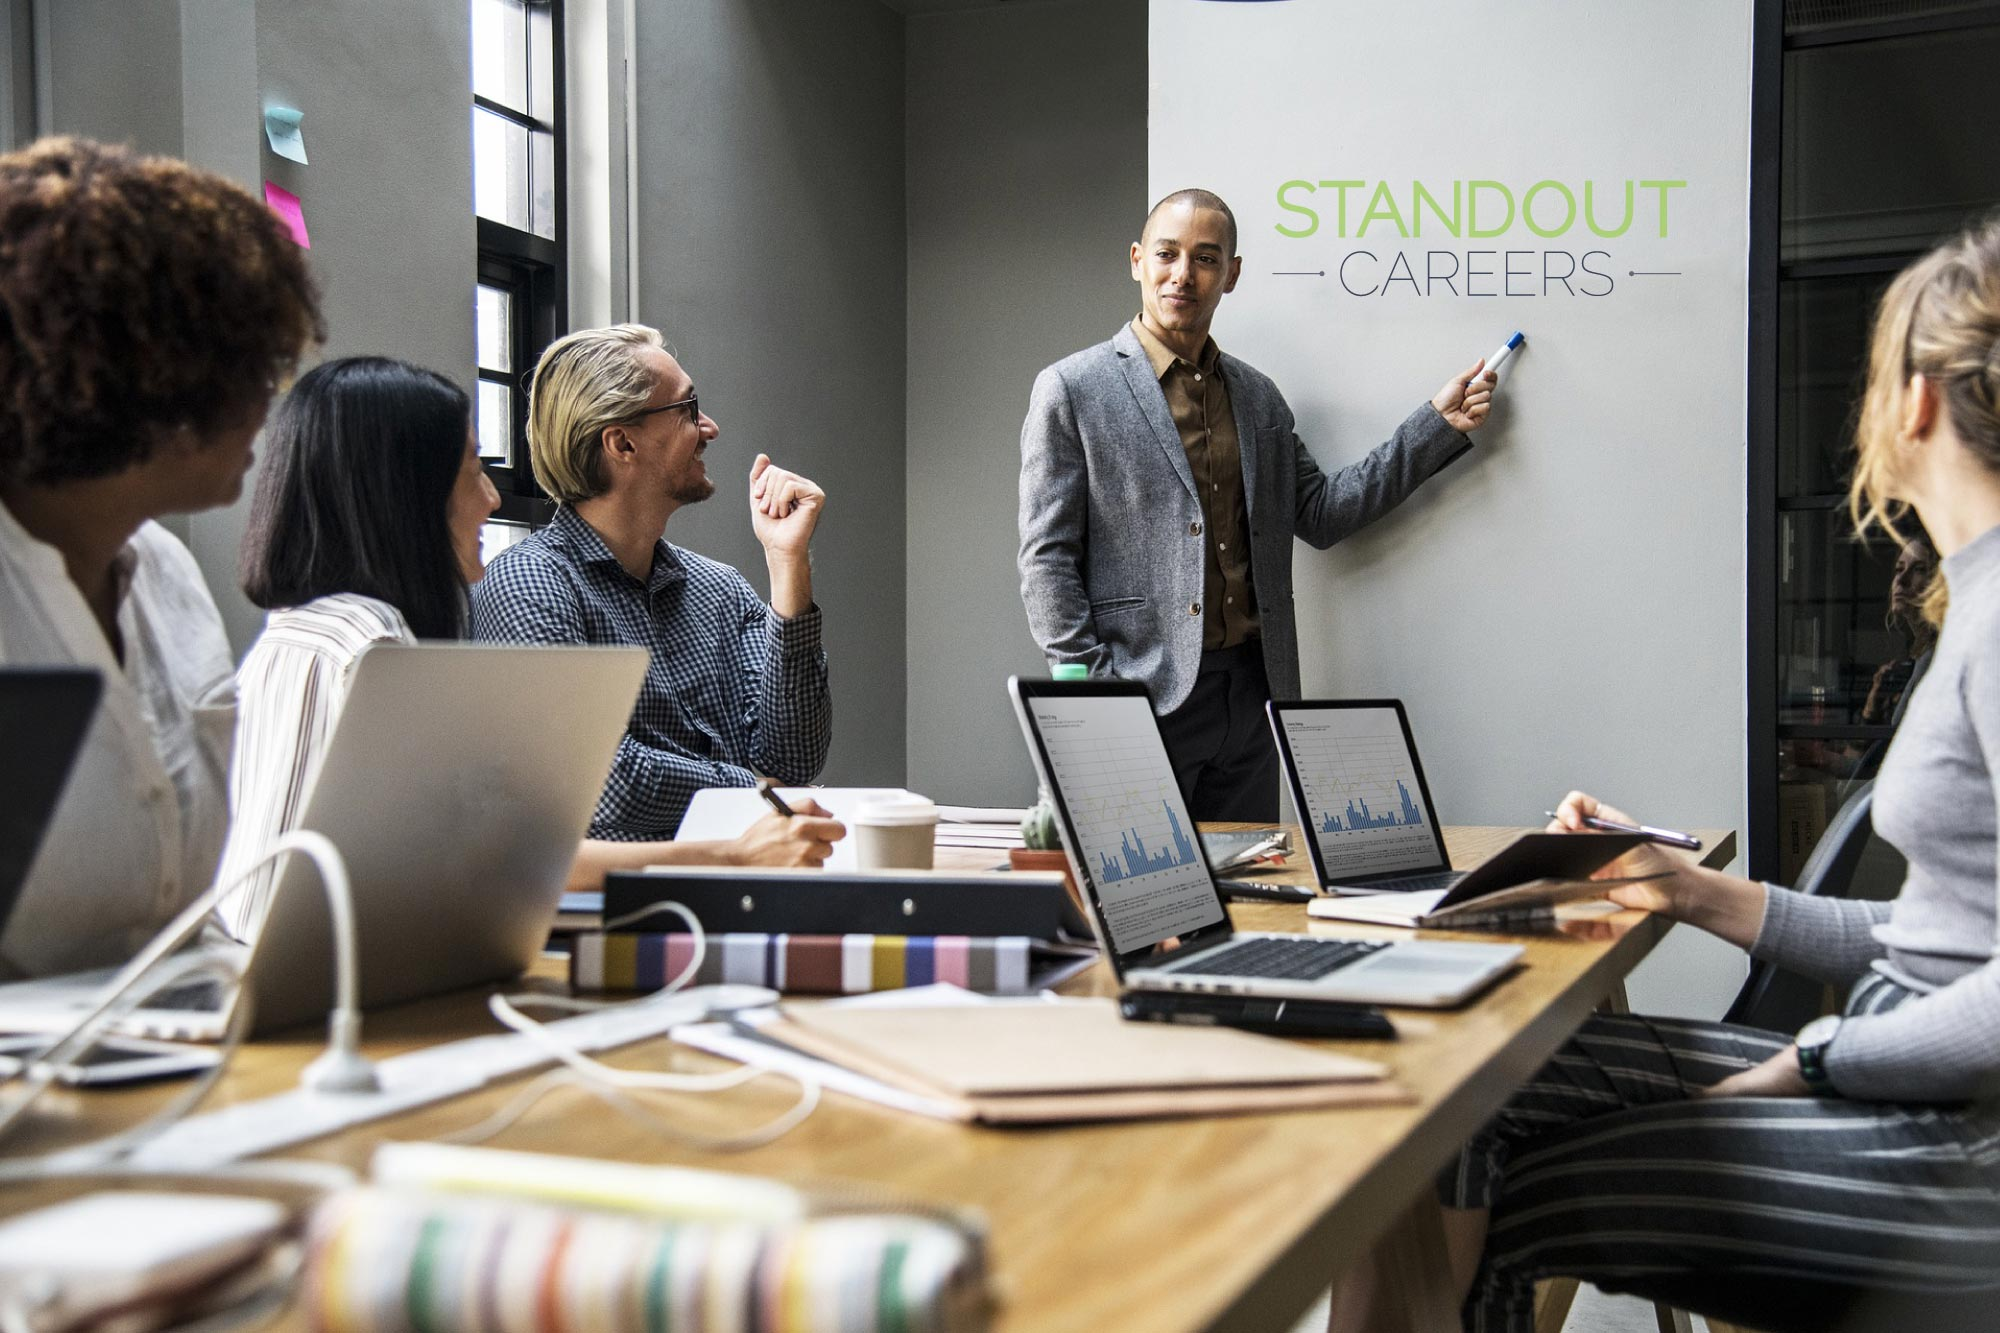 Start your medical career development program by Standout medical careers